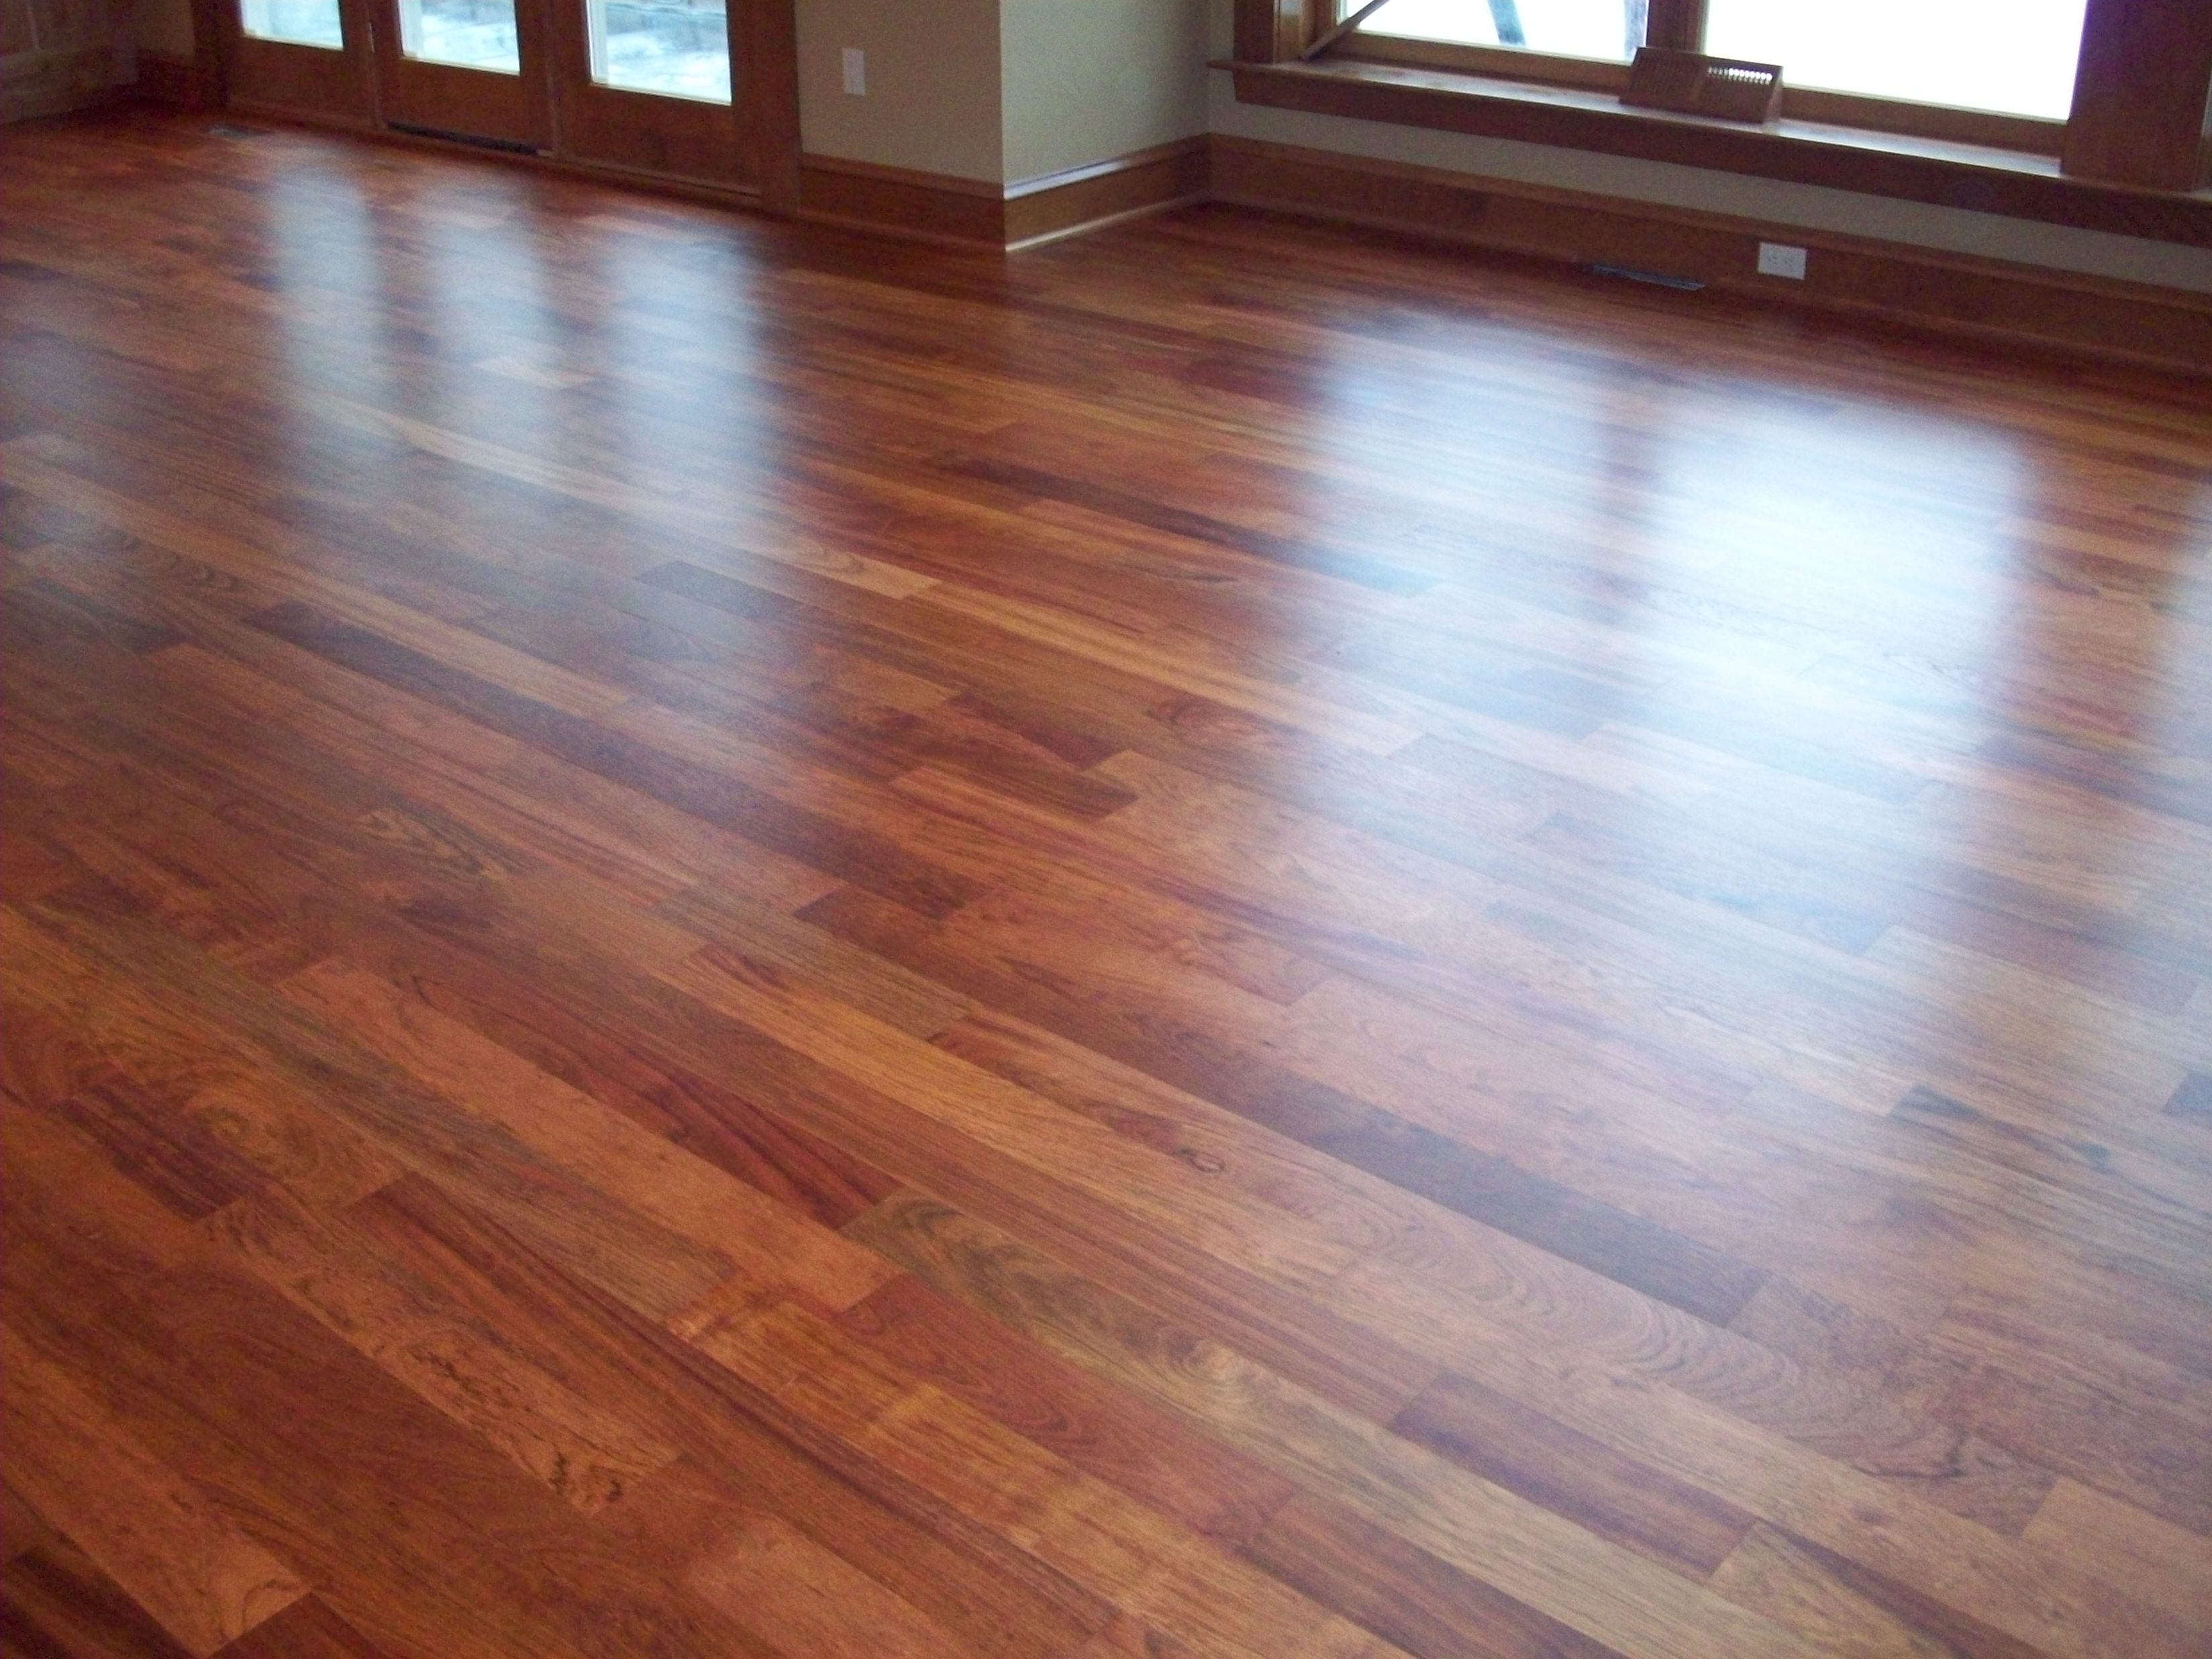 cleaning hardwood cleaner shutterstock floor laminate floors timbertown